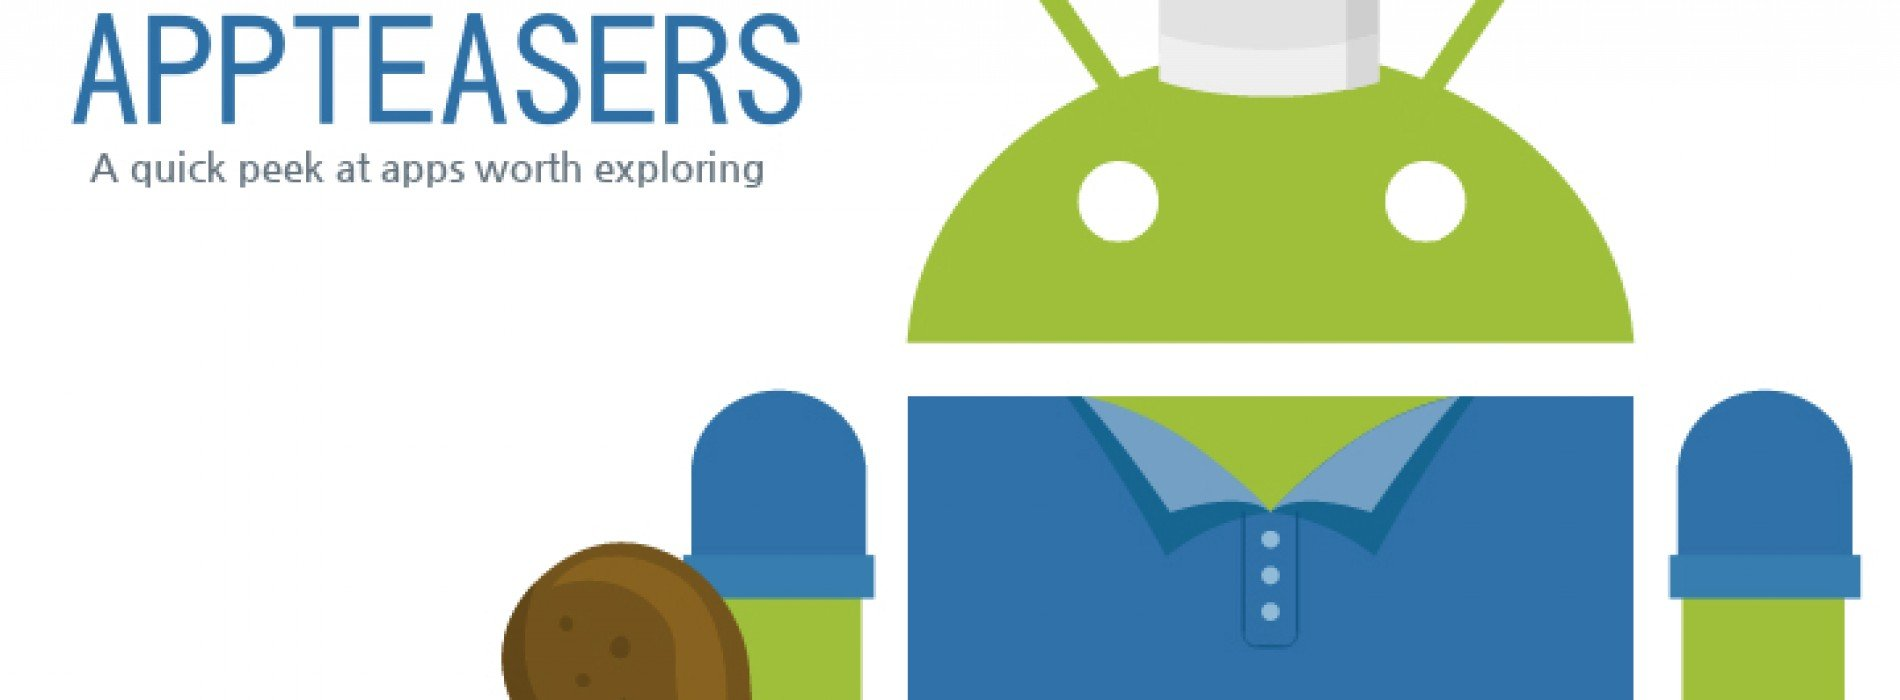 APPTEASERS: 15 Android games and apps worth exploring (Feb 14)